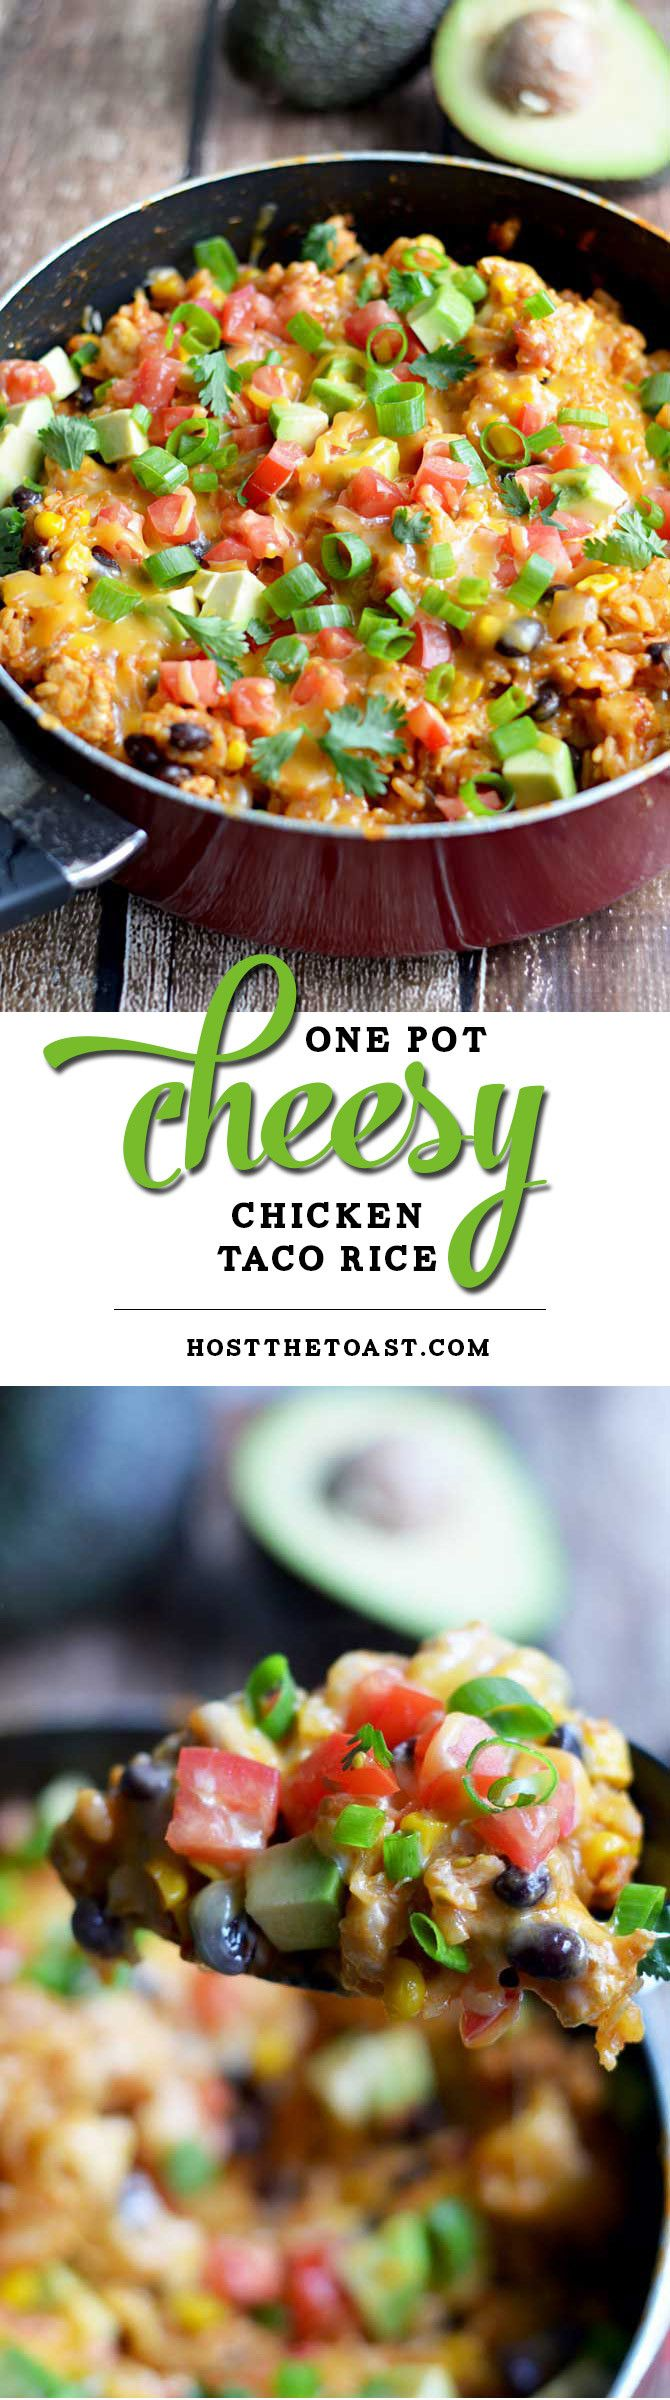 If your kitchen space is limited, you might like this One Pot Cheesy Chicken Taco Rice. | Tiny Homes